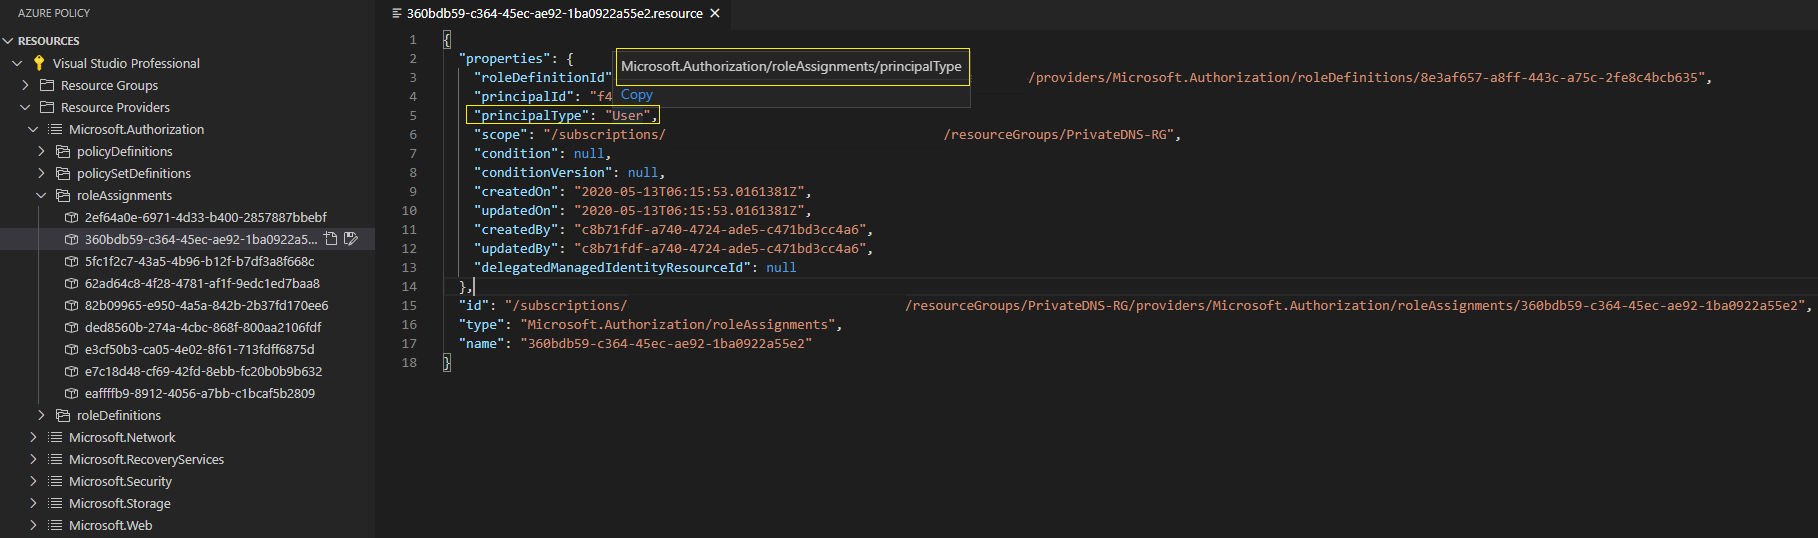 azure policy extension roleassignments principaltype